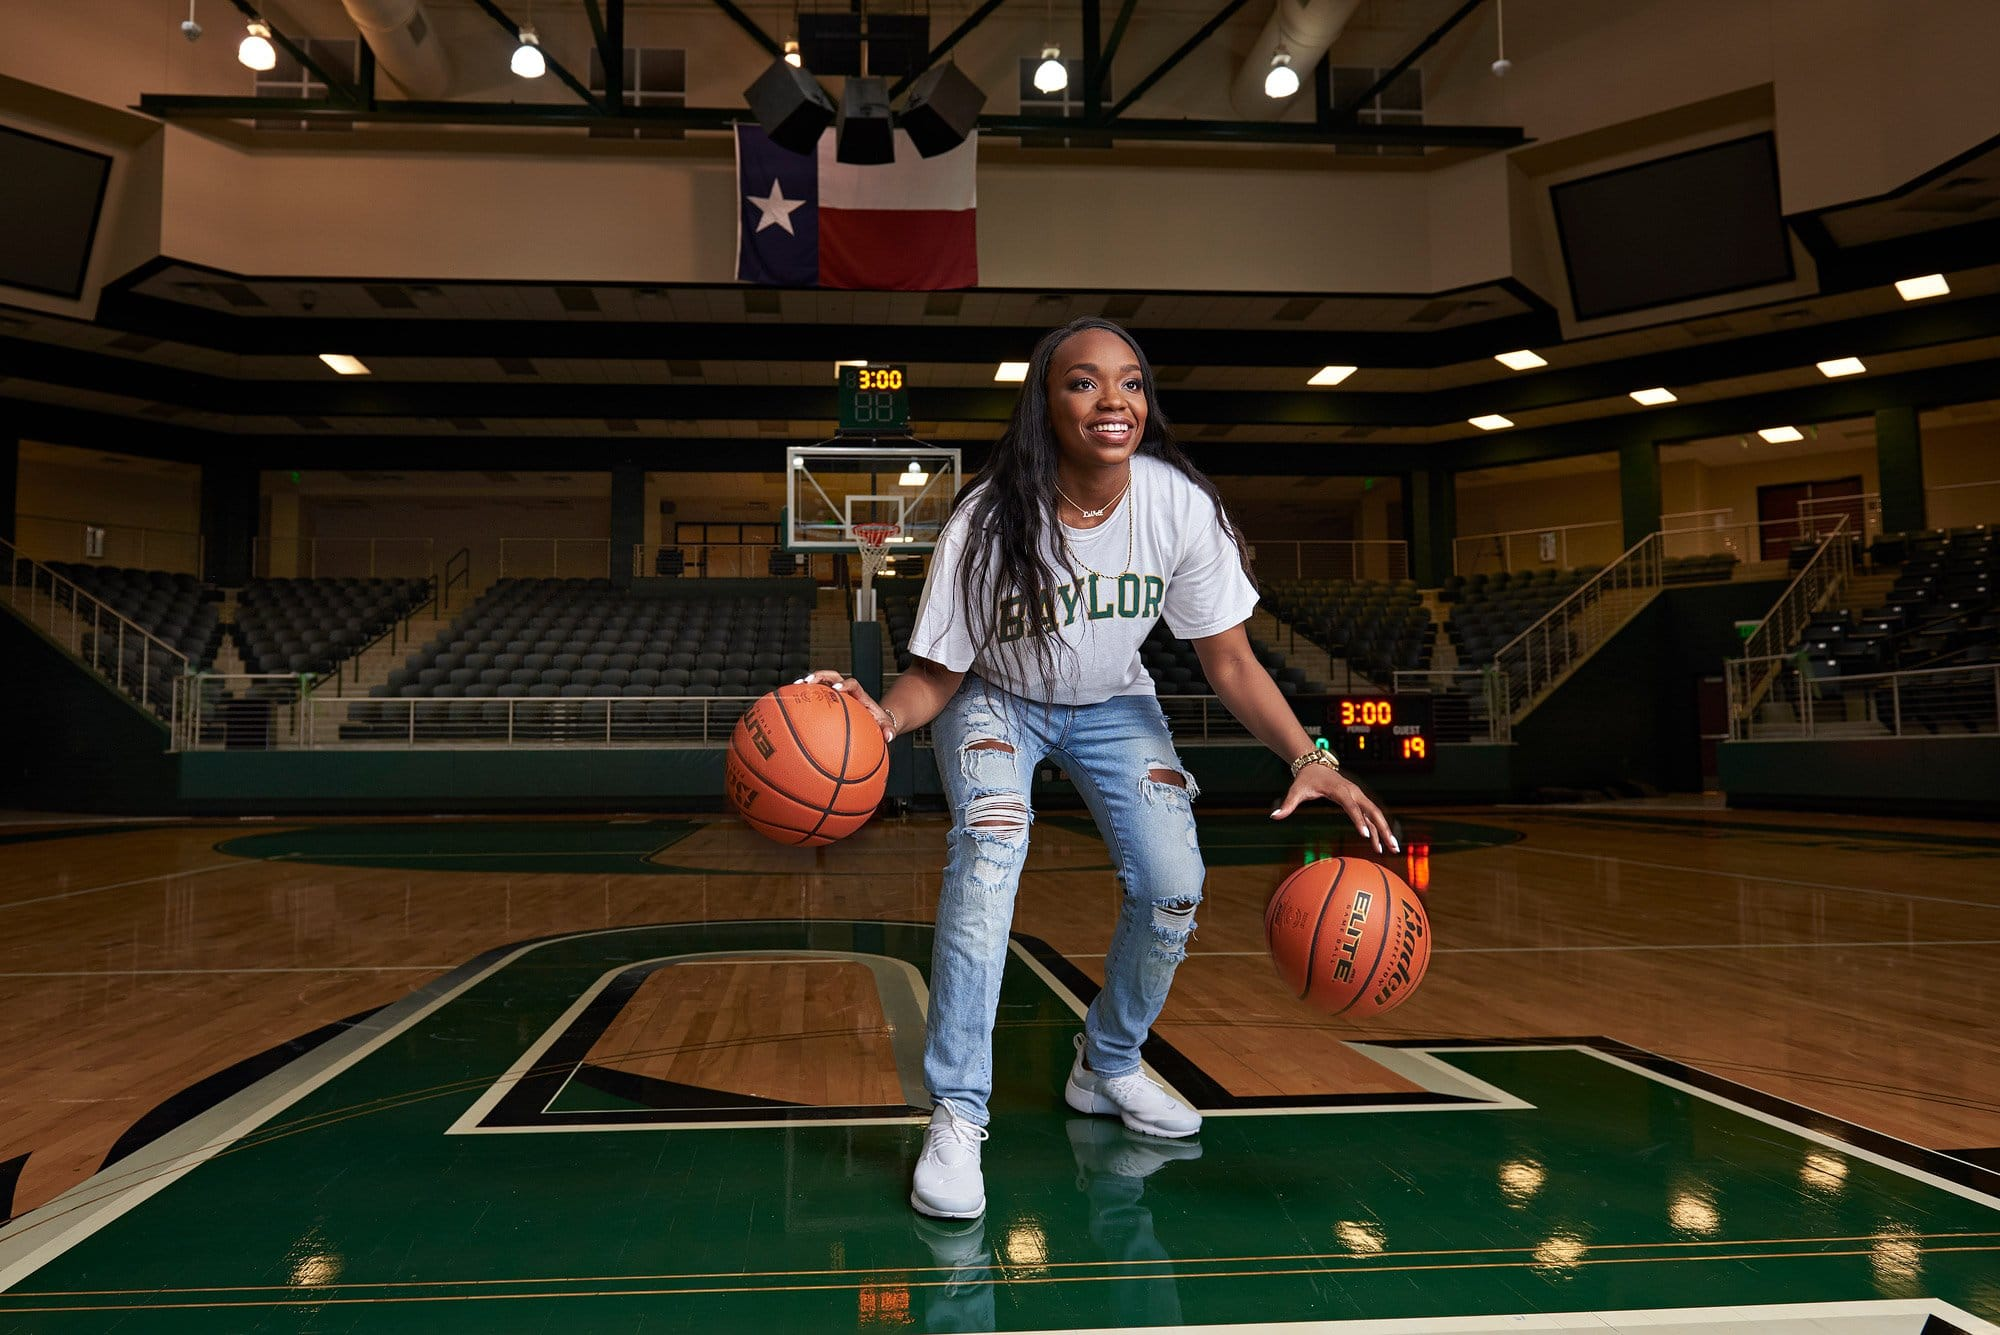 Baylor basketball commit Jordyn Oliver dribbles for Prosper senior photos with jeff dietz photography